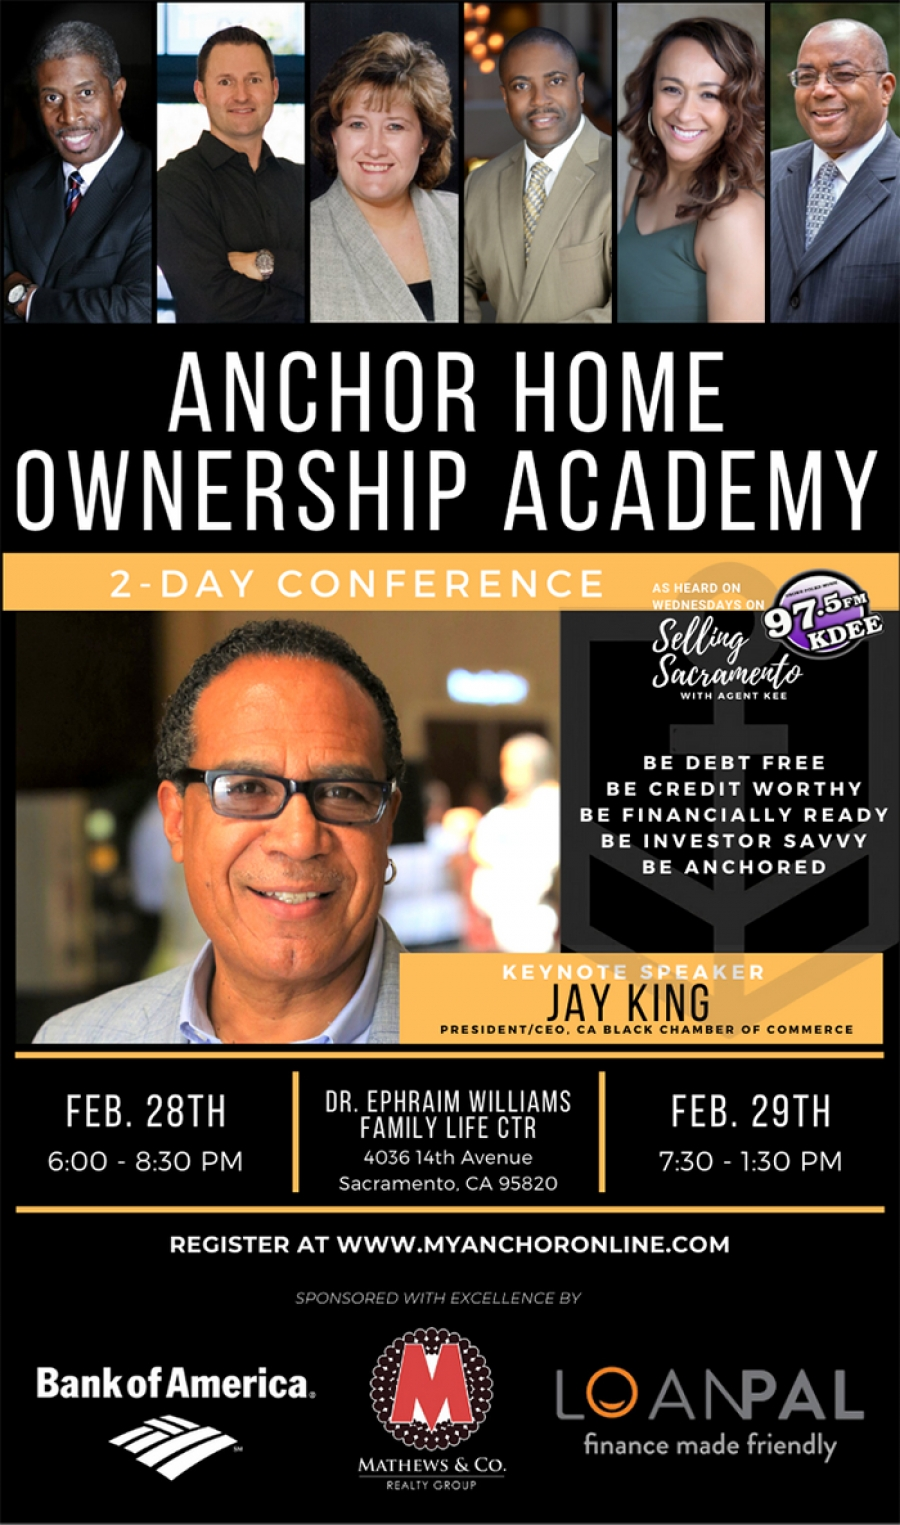 Get 17k from B of A, Get Credit Worthy, Get Debt Free, Get Investor Savvy, Get Anchored!